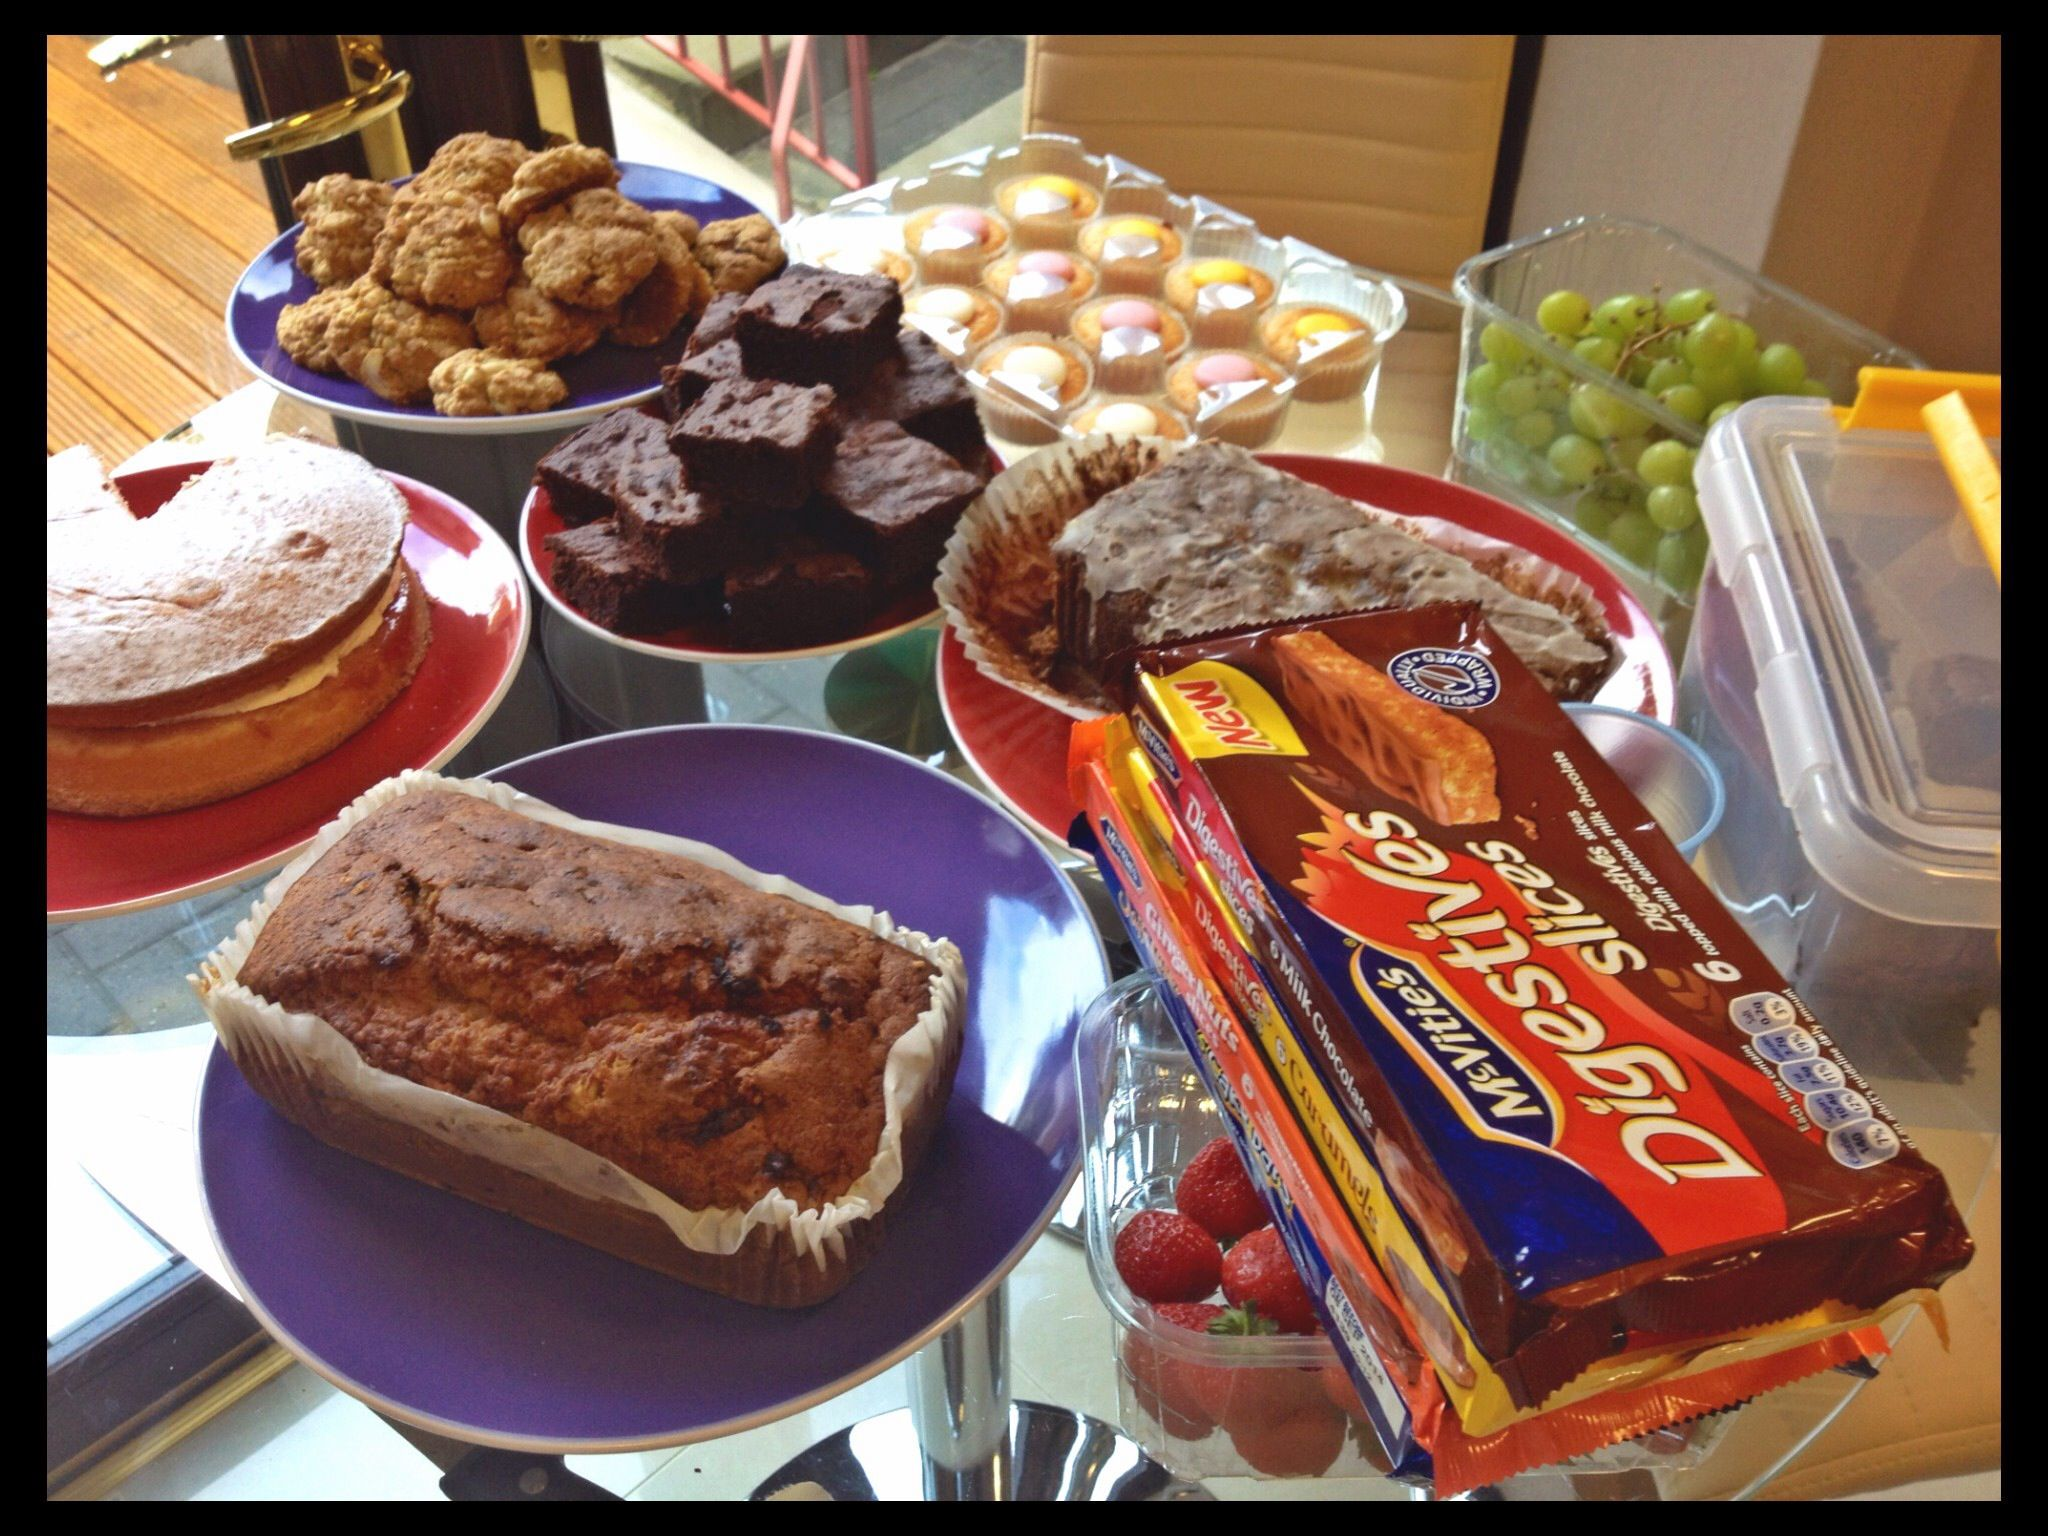 Dress-Down Cake Day Friday! Today we are raising money for @woodlandtrust. We have a yummy selection of cakes to keep us going today! #fundraising #cakeday #dressdownfriday